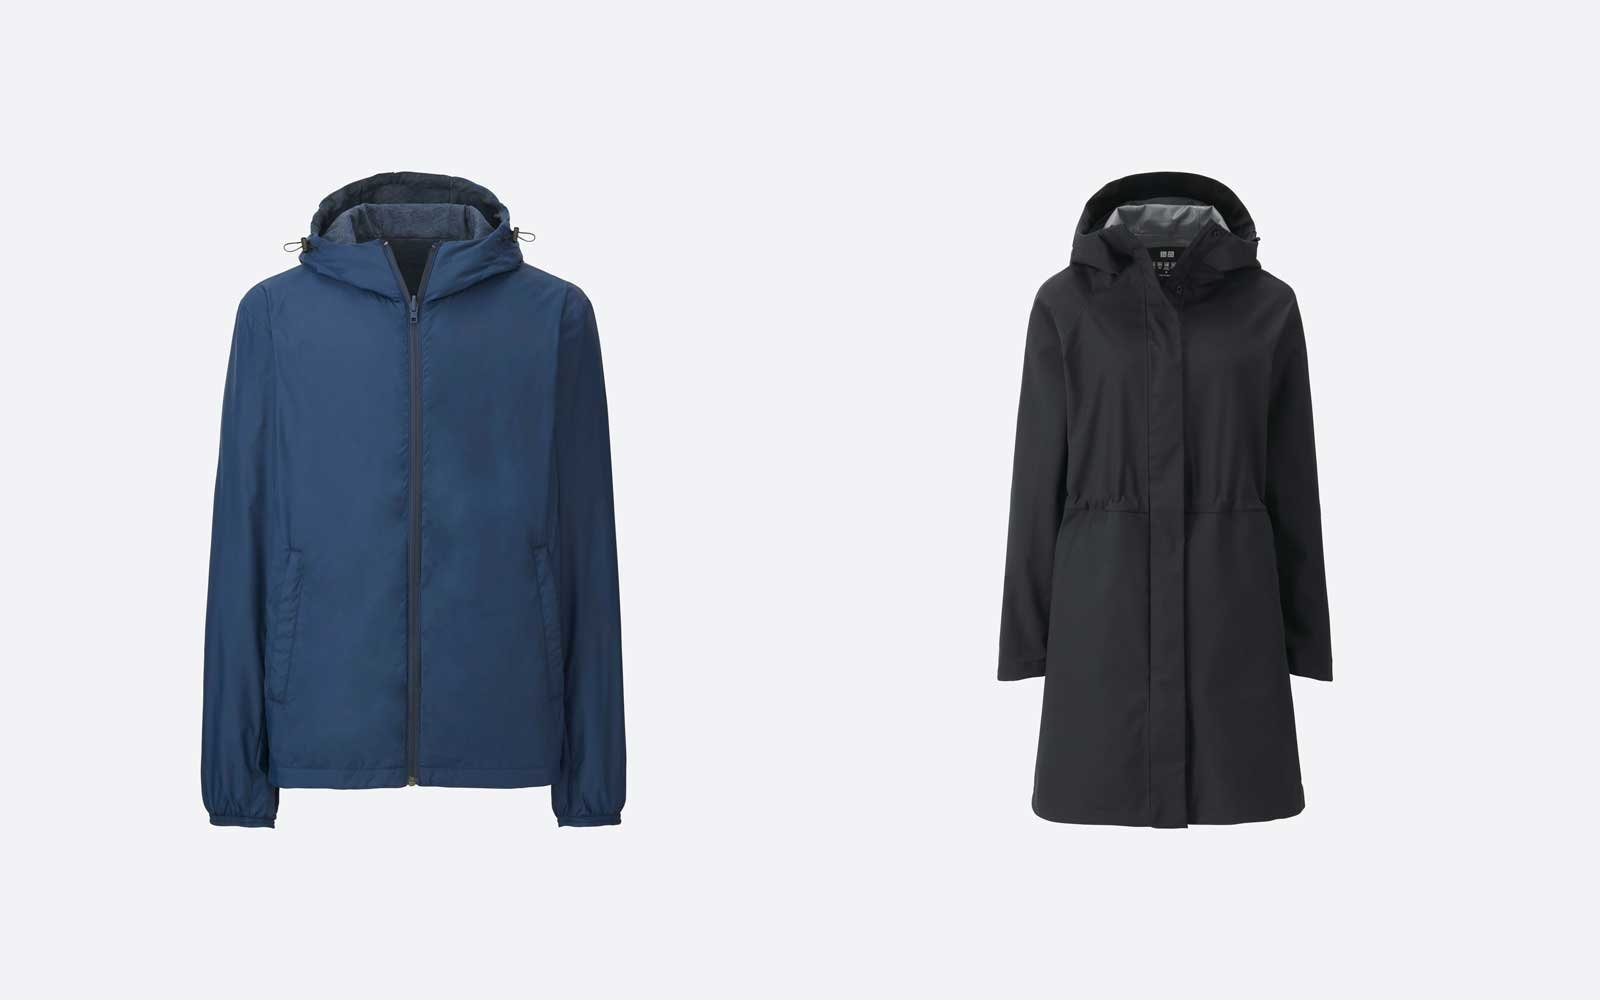 Uniqlo Waterproof Jacket